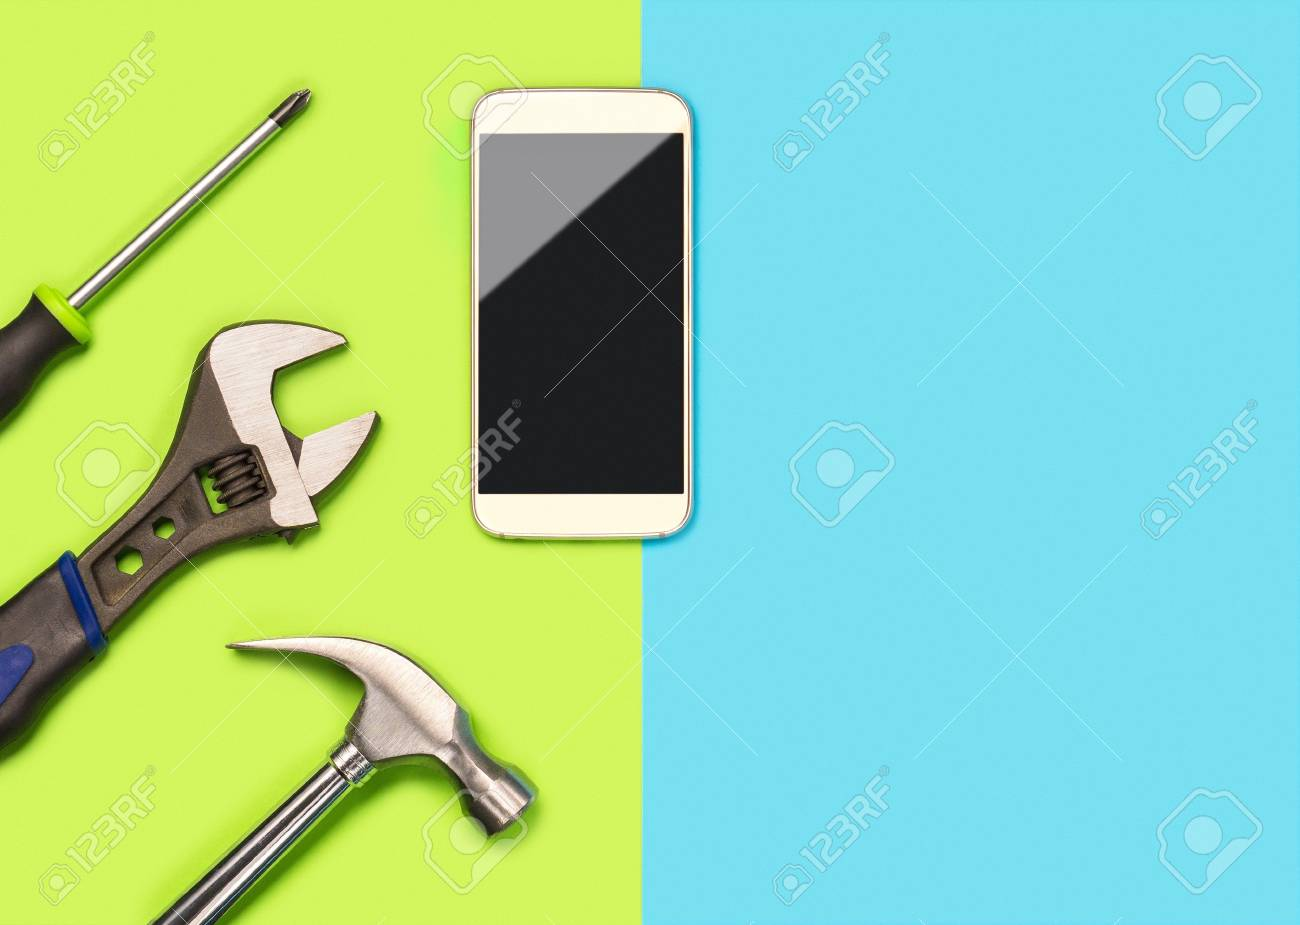 Mobile Phone Repair Background Or Layout For Smartphone Fixing Stock Photo Picture And Royalty Free Image Image 95475020